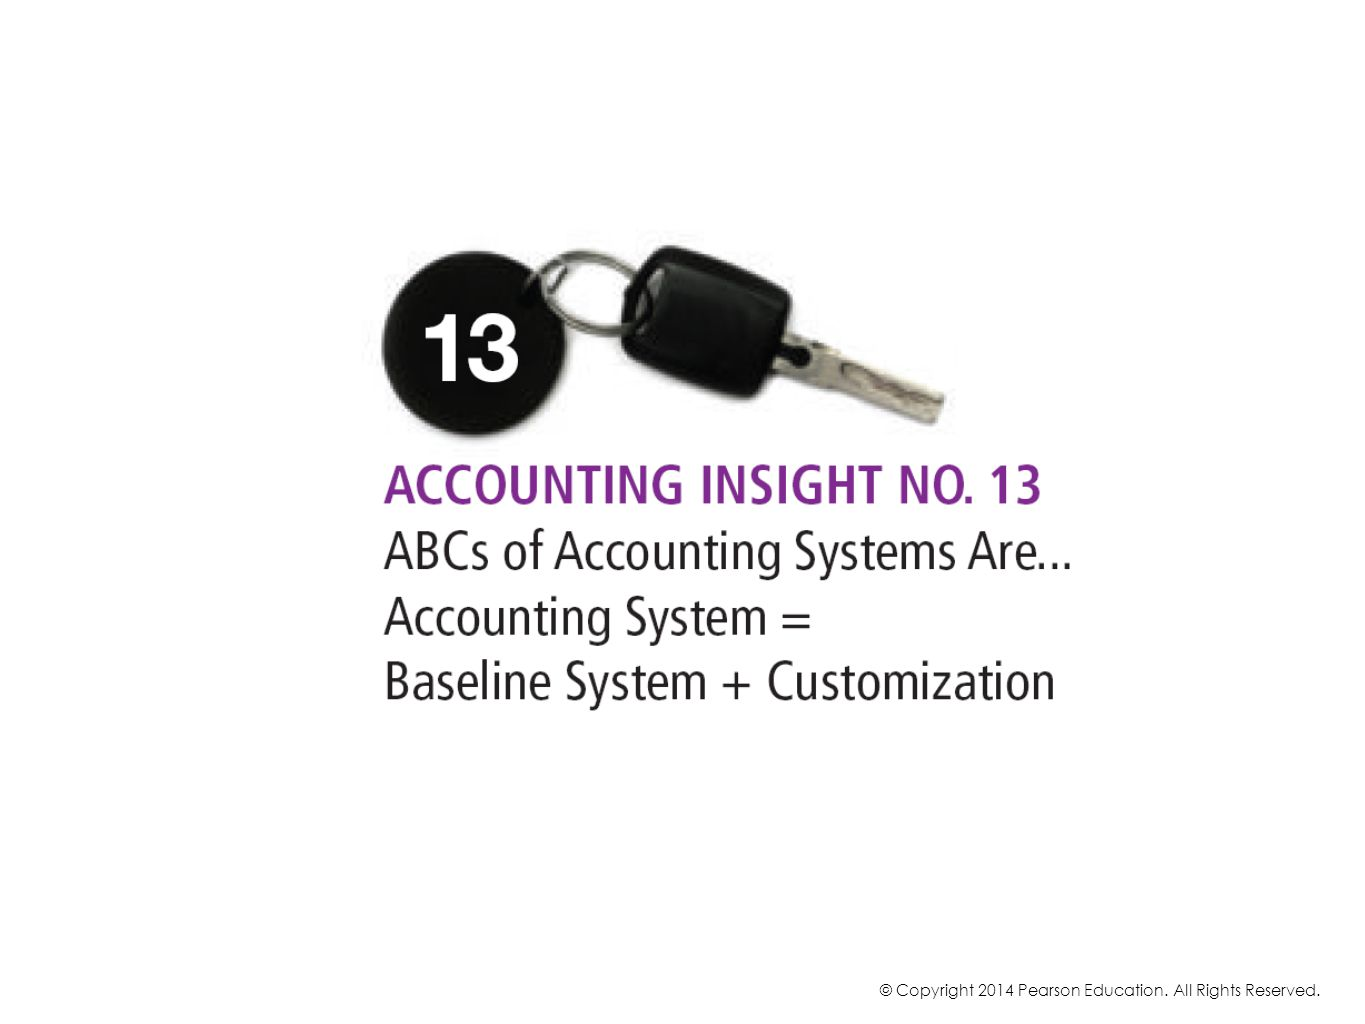 So you can get a head start by using a baseline accounting system with modules and transactions that are common to most enterprises.